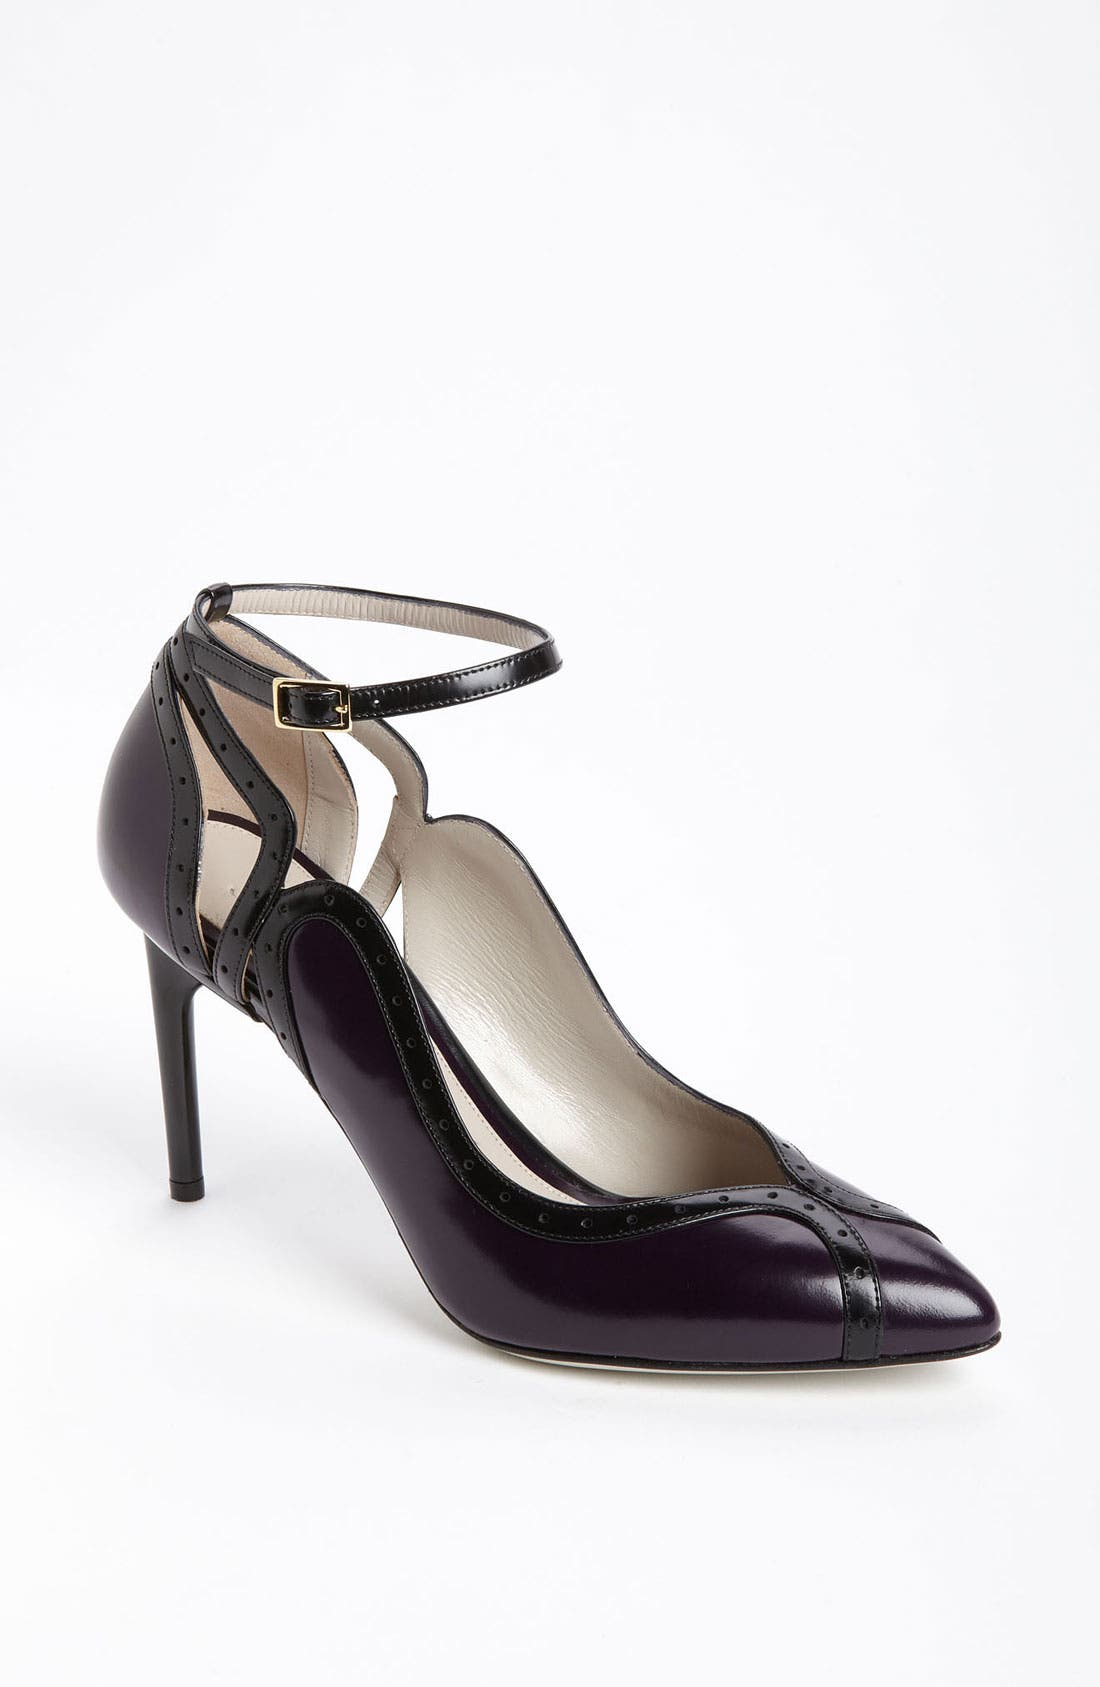 Main Image - Jason Wu 'Karen' Pump